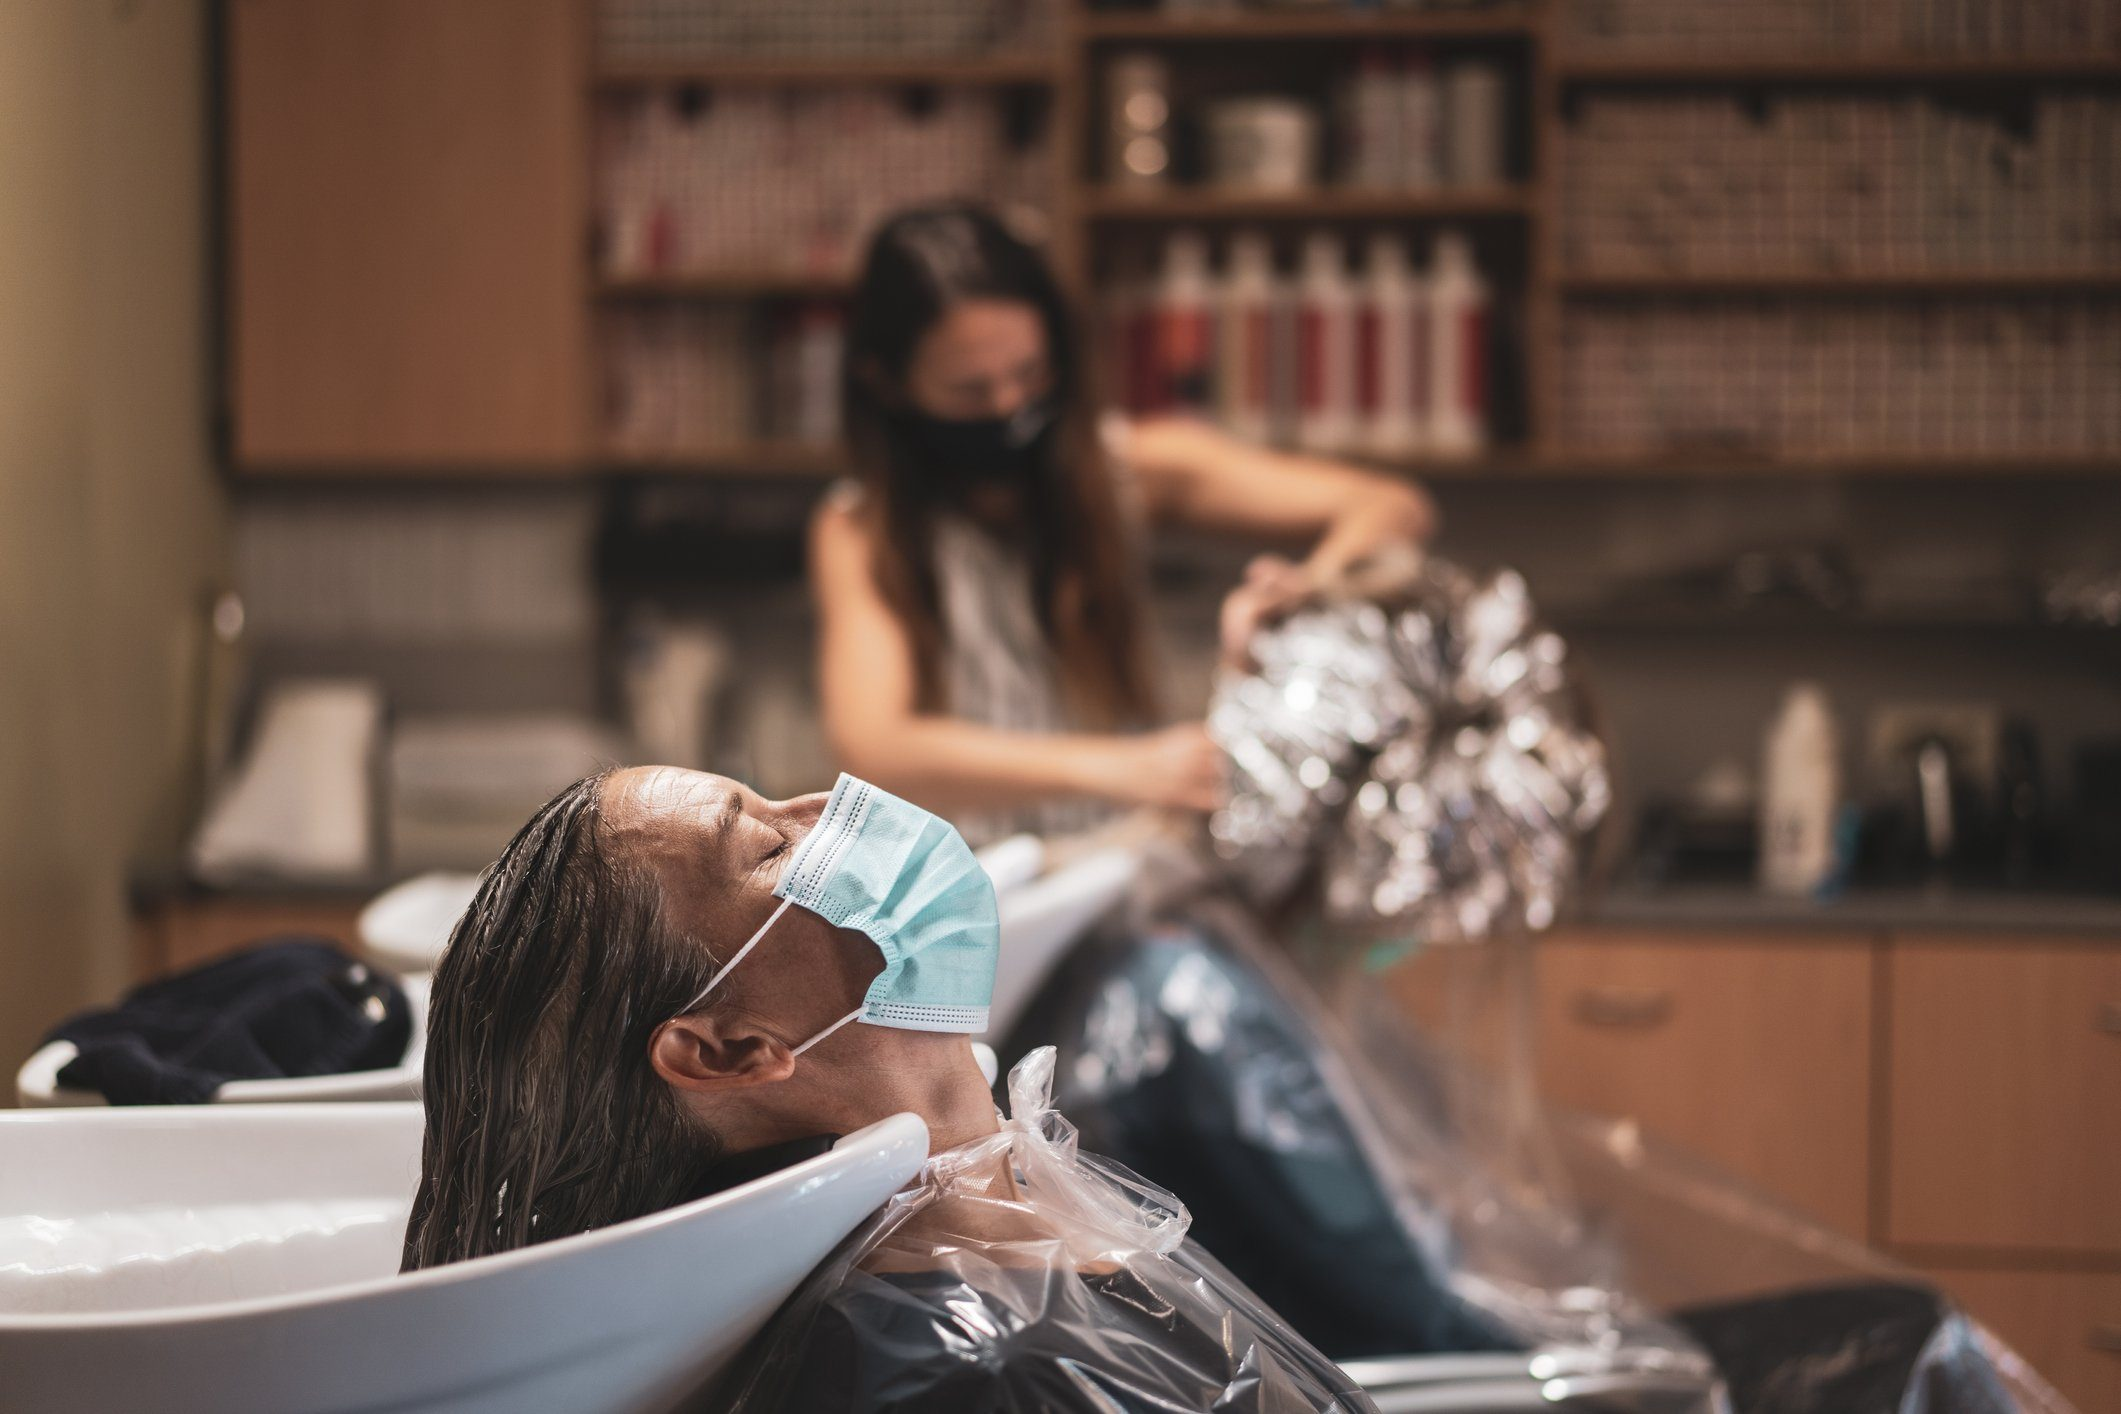 hair appointment during the Covid-19 pandemic